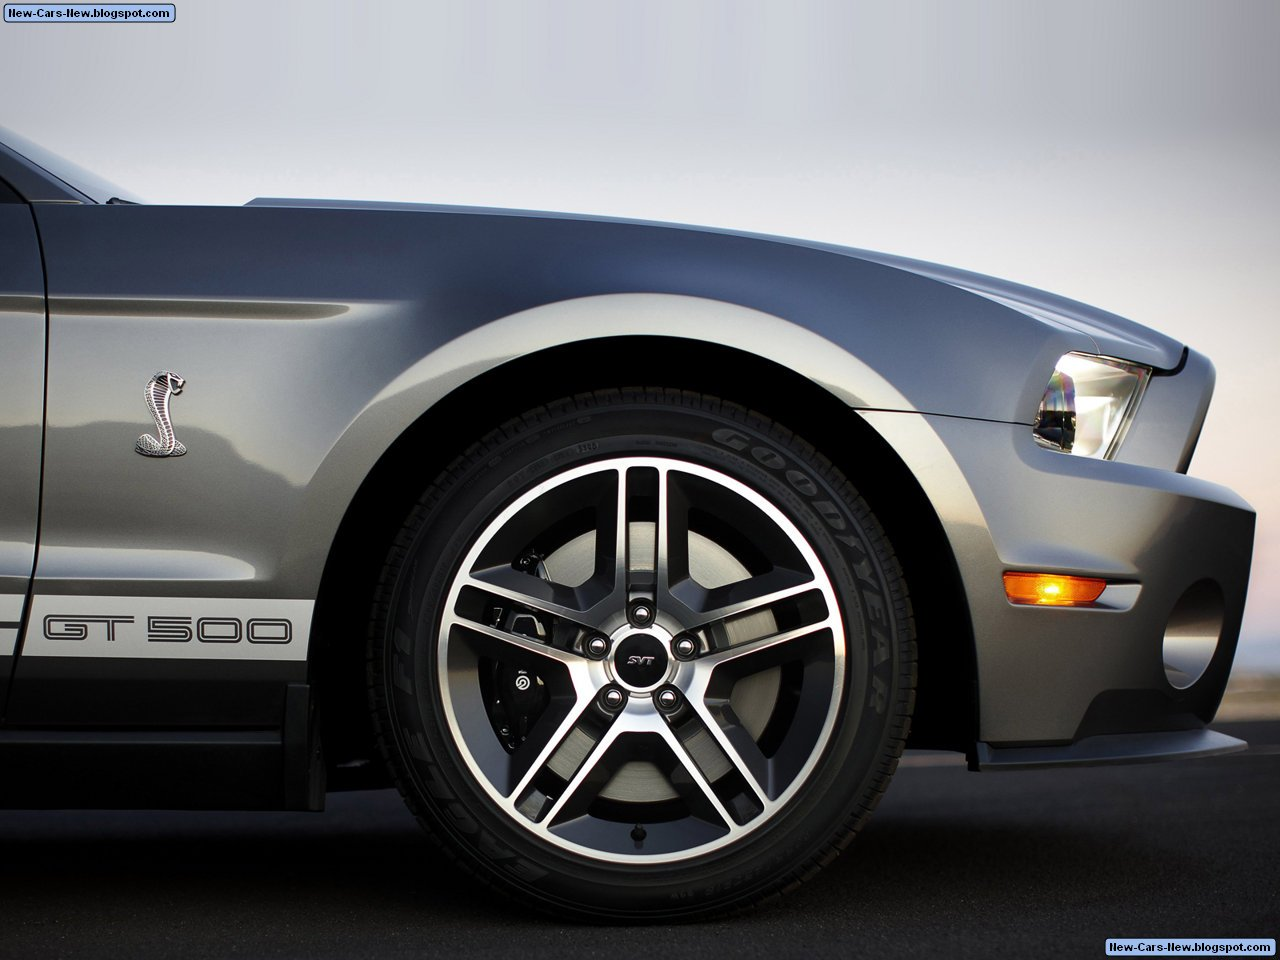 Ford Mustang Shelby GT500 Convertible 2010 1280x960 wallpaper 02 Erica Campbell Picture Gallery